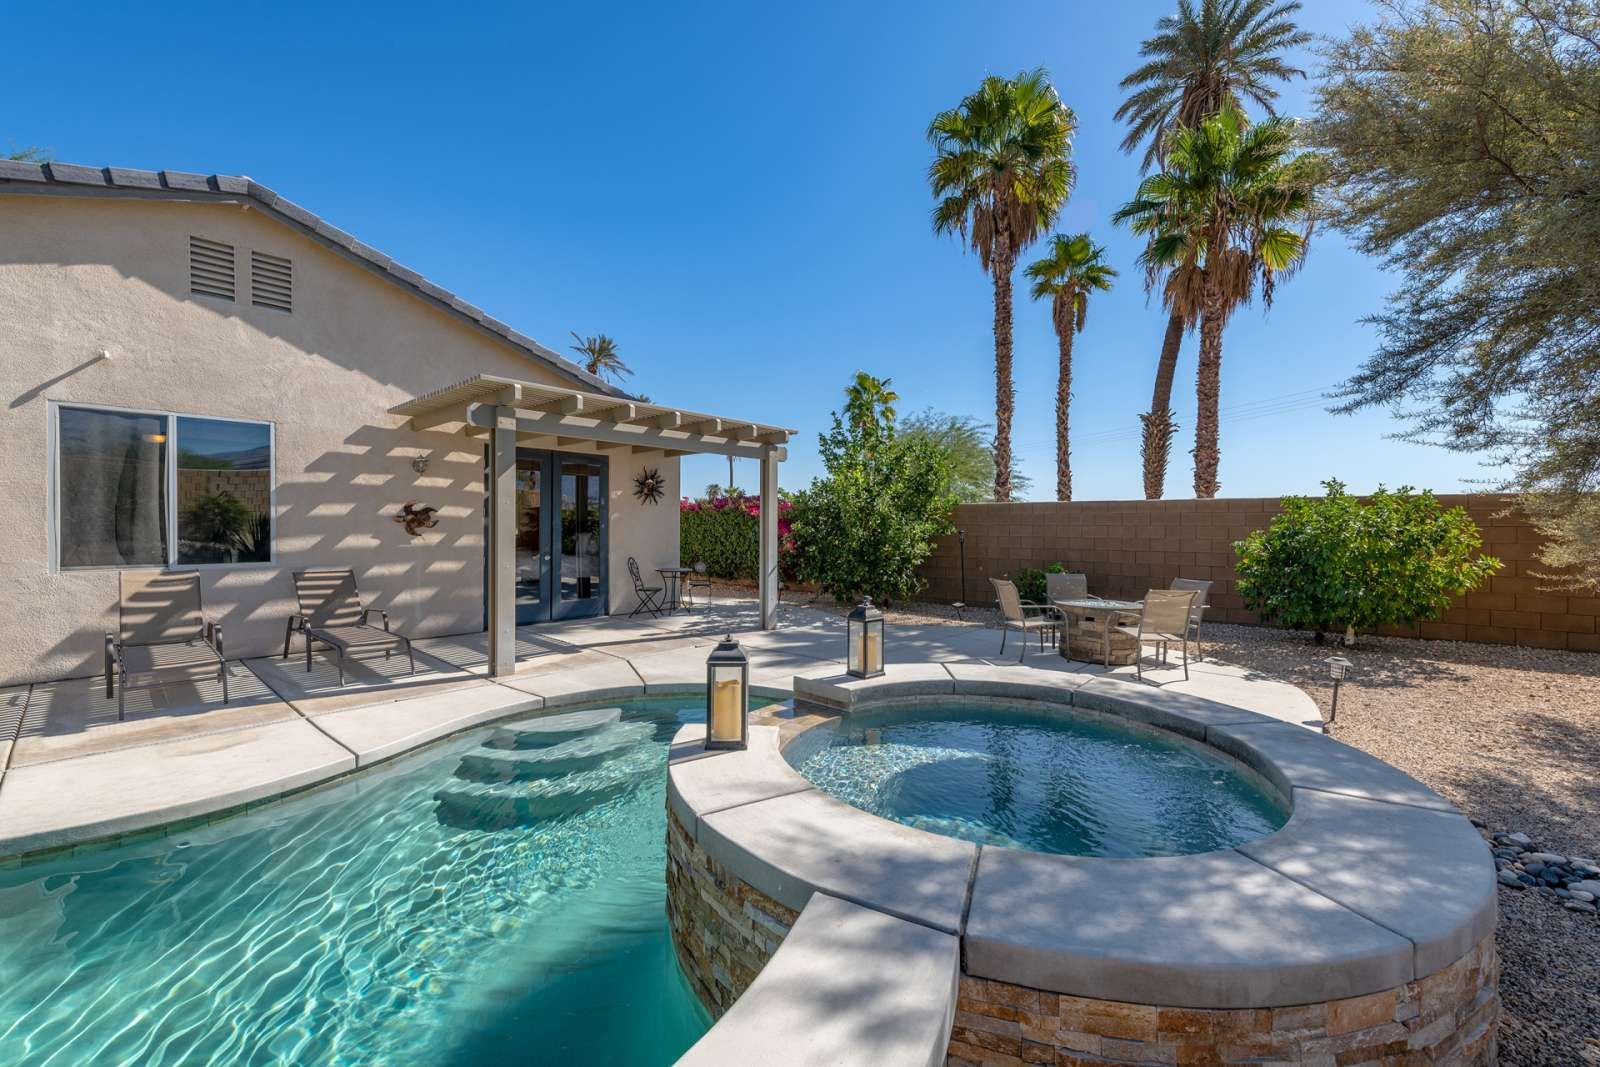 Indio Vacation Rental Anastacia Desert Oasis Saltwater Pool Spa Walk To Polo Fields And Music Festiva Saltwater Pool Spa Pool Palm Springs Vacation Rentals